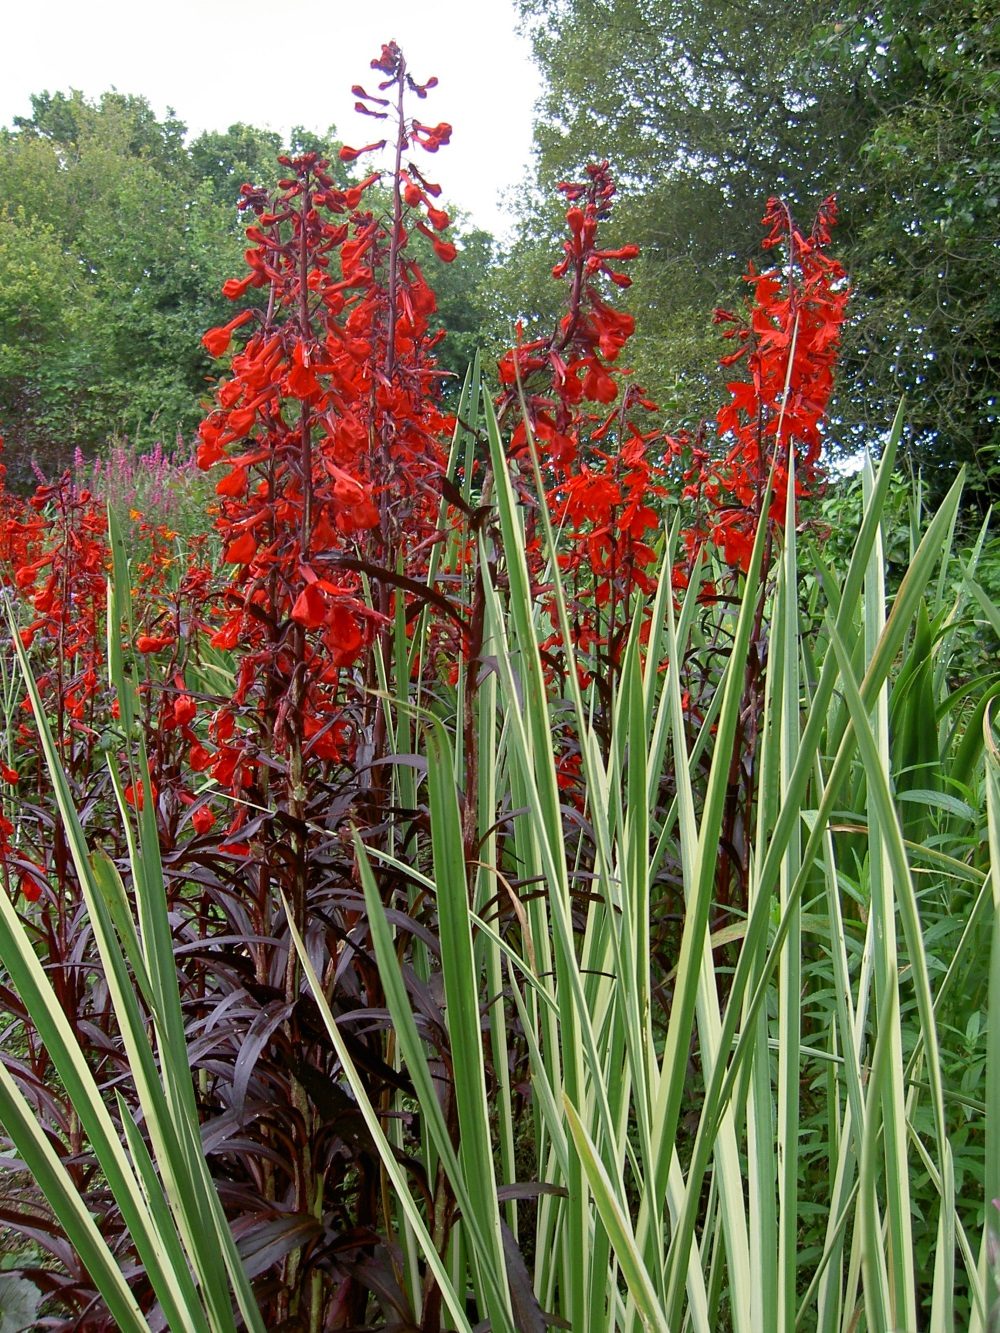 Lobelia Fulgens Queen Victoria Red Leaved Cardinal Flower Scarlet